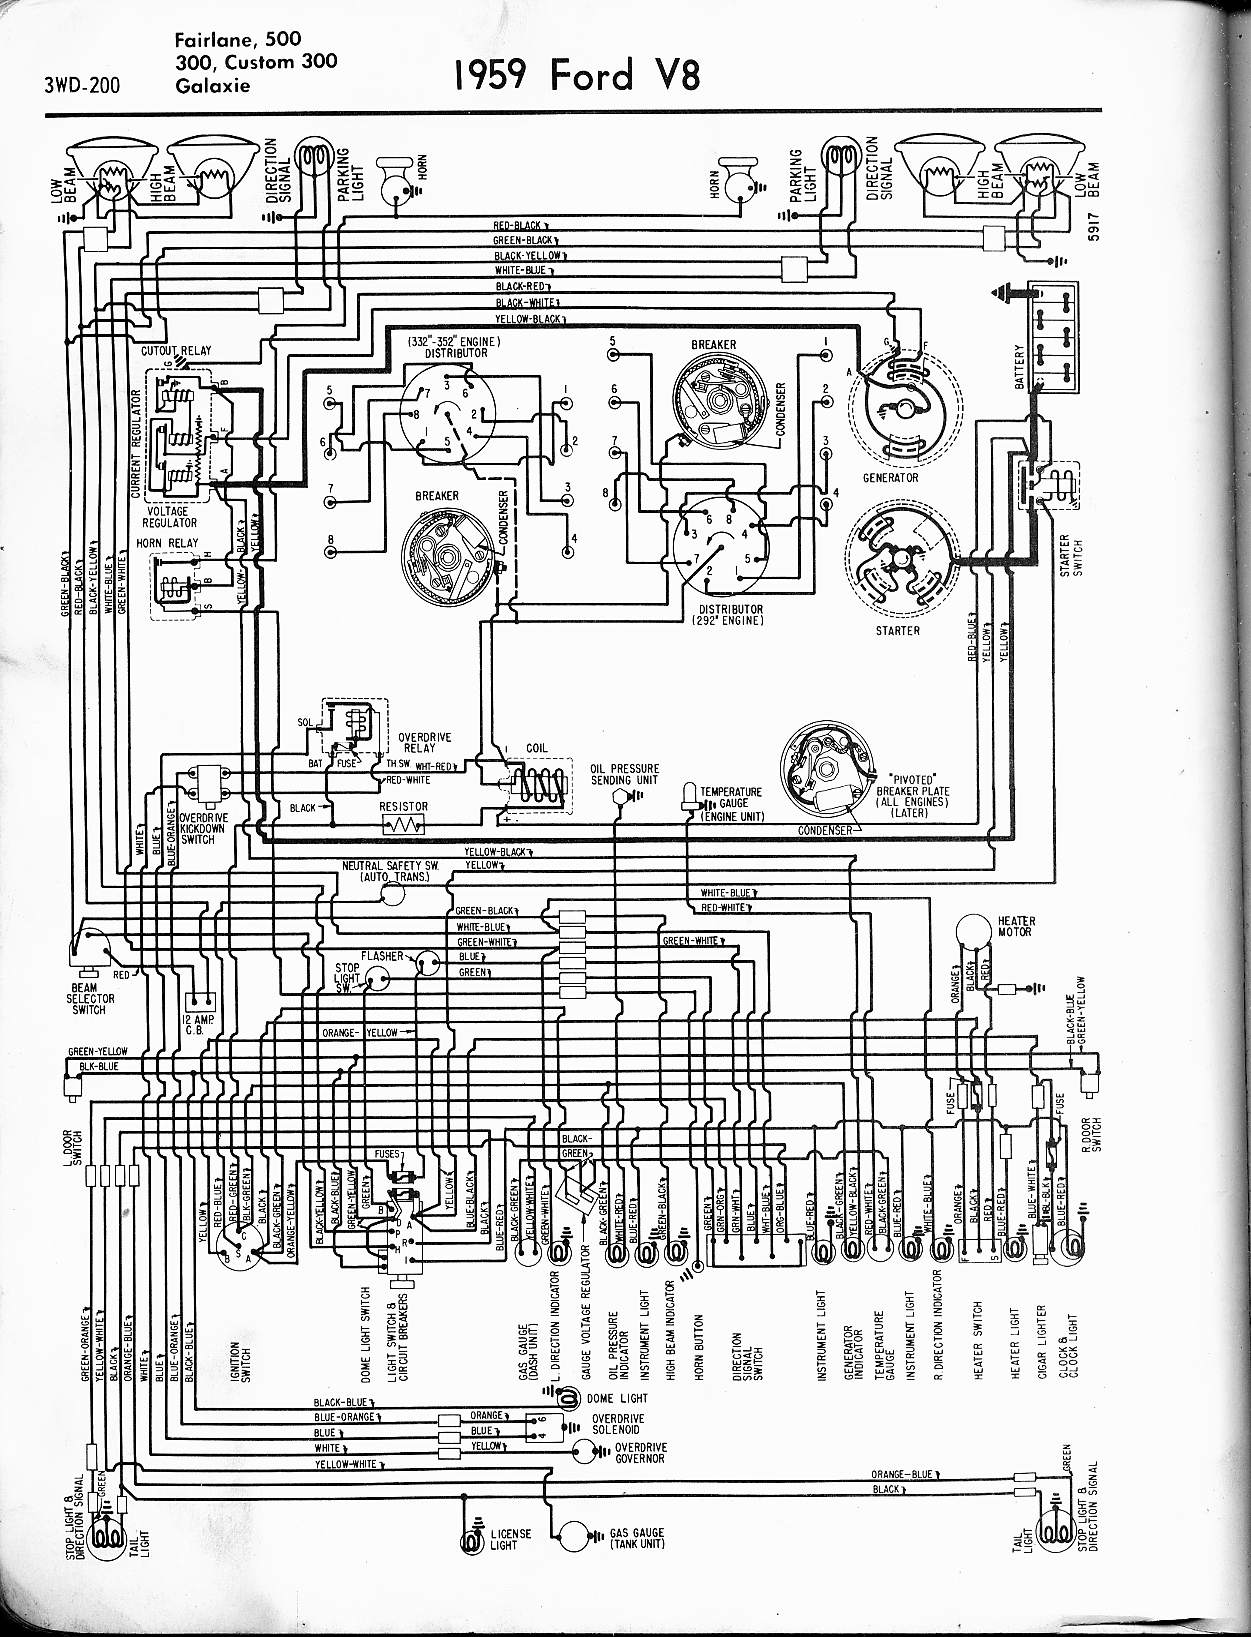 57 65 ford wiring diagrams rh oldcarmanualproject com 1959 Ford Fairlane Wiring-Diagram 1970 Ford Fairlane Wiring-Diagram